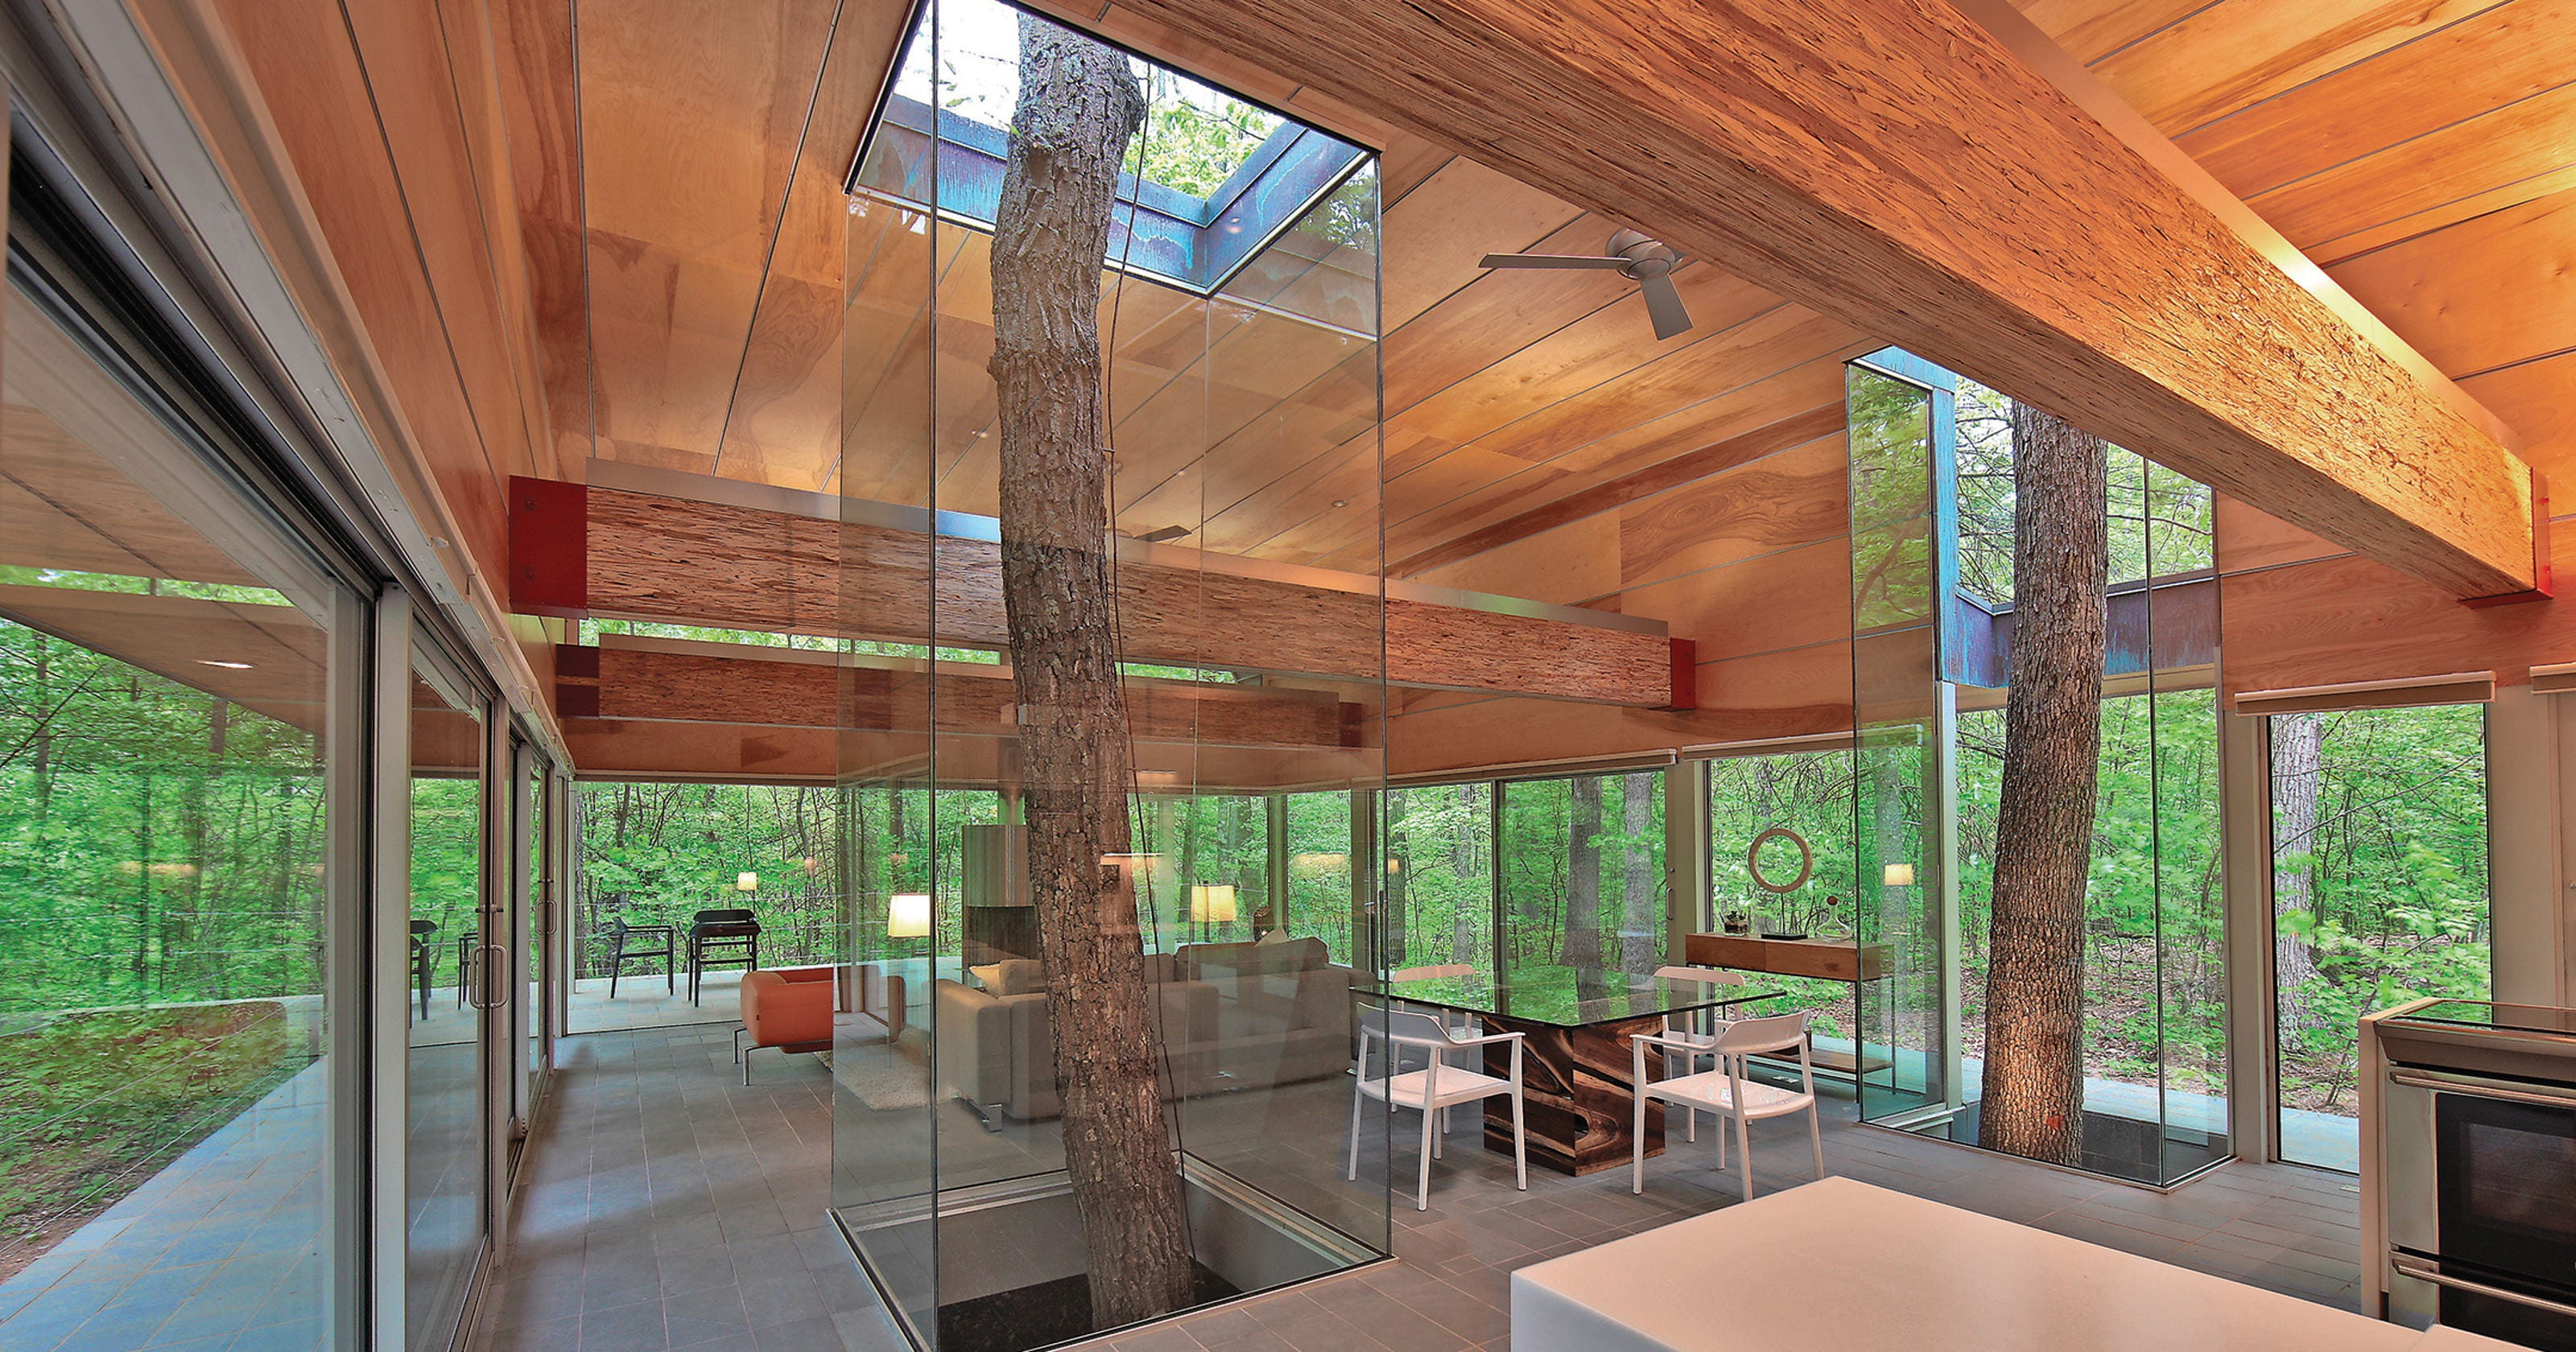 Bring the outdoors in and reap health, design benefits